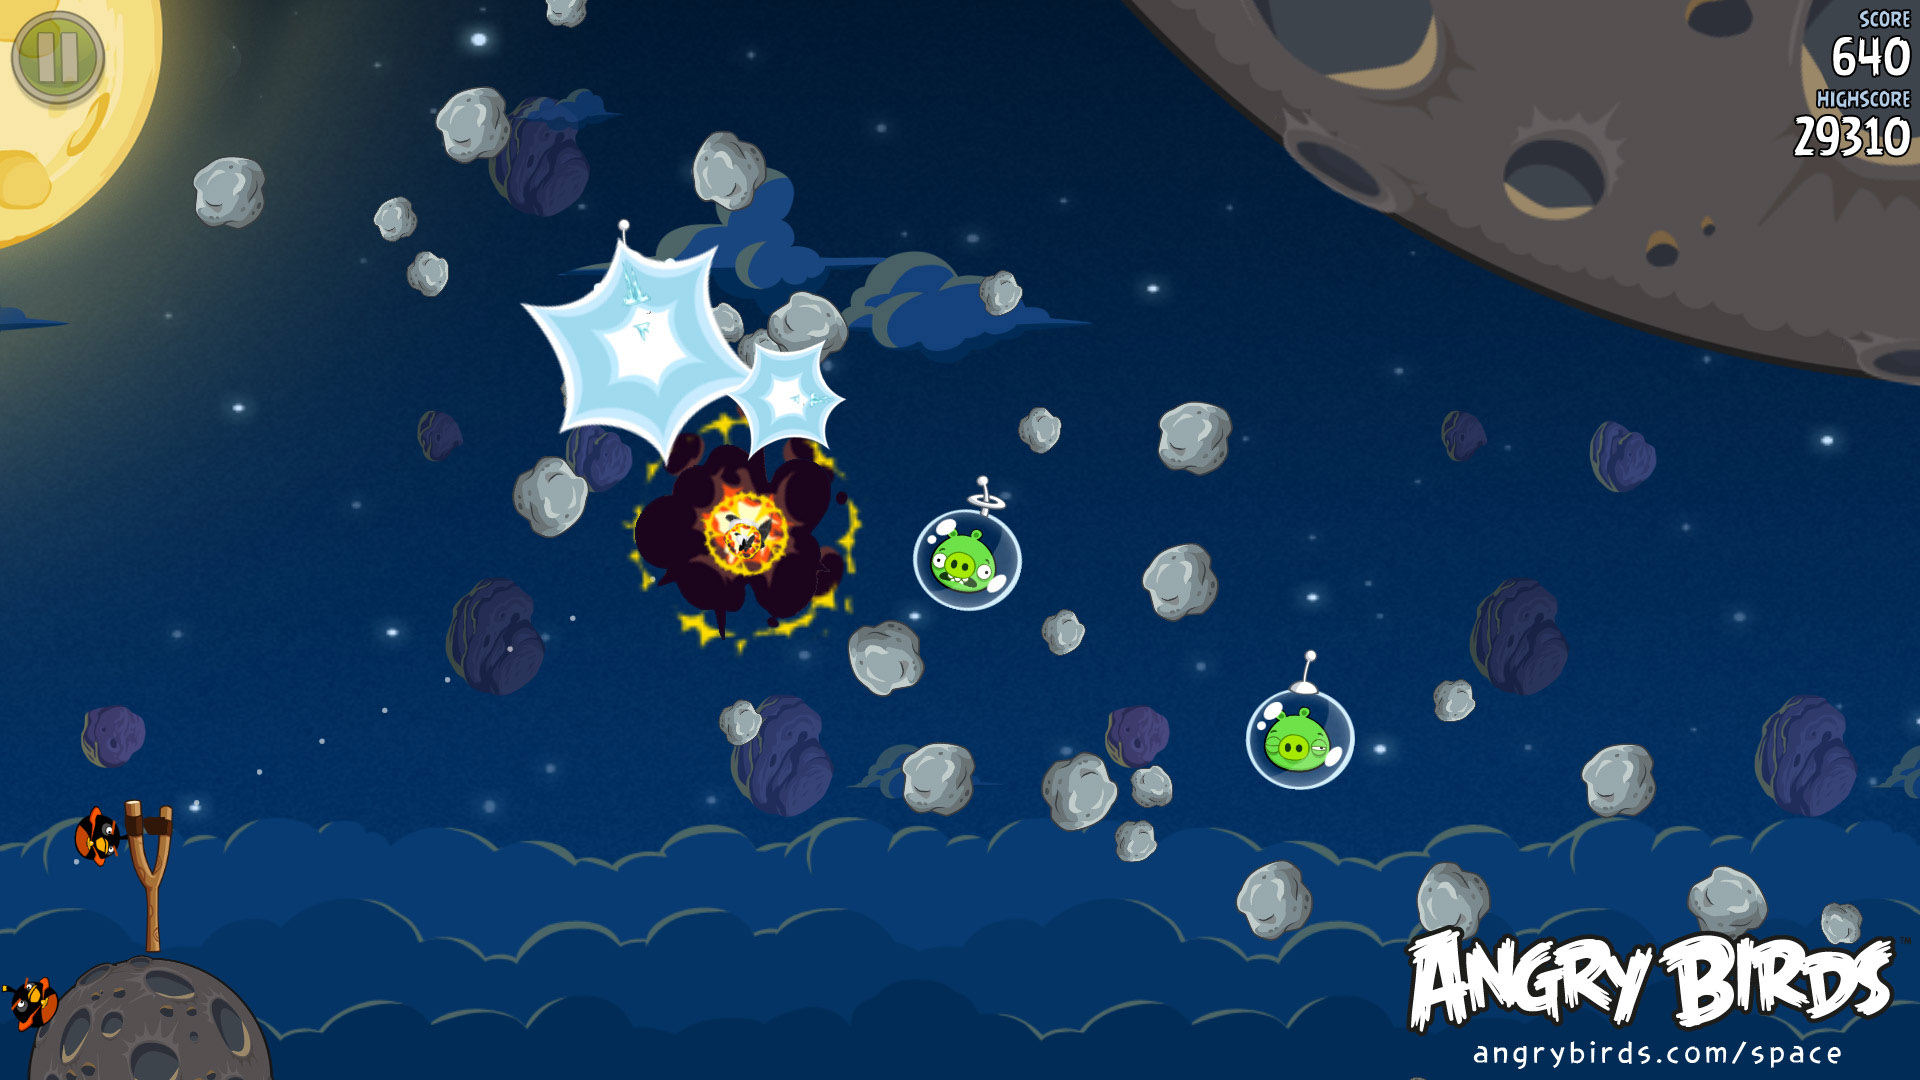 Angry Birds Space Launch Date Announced In Space